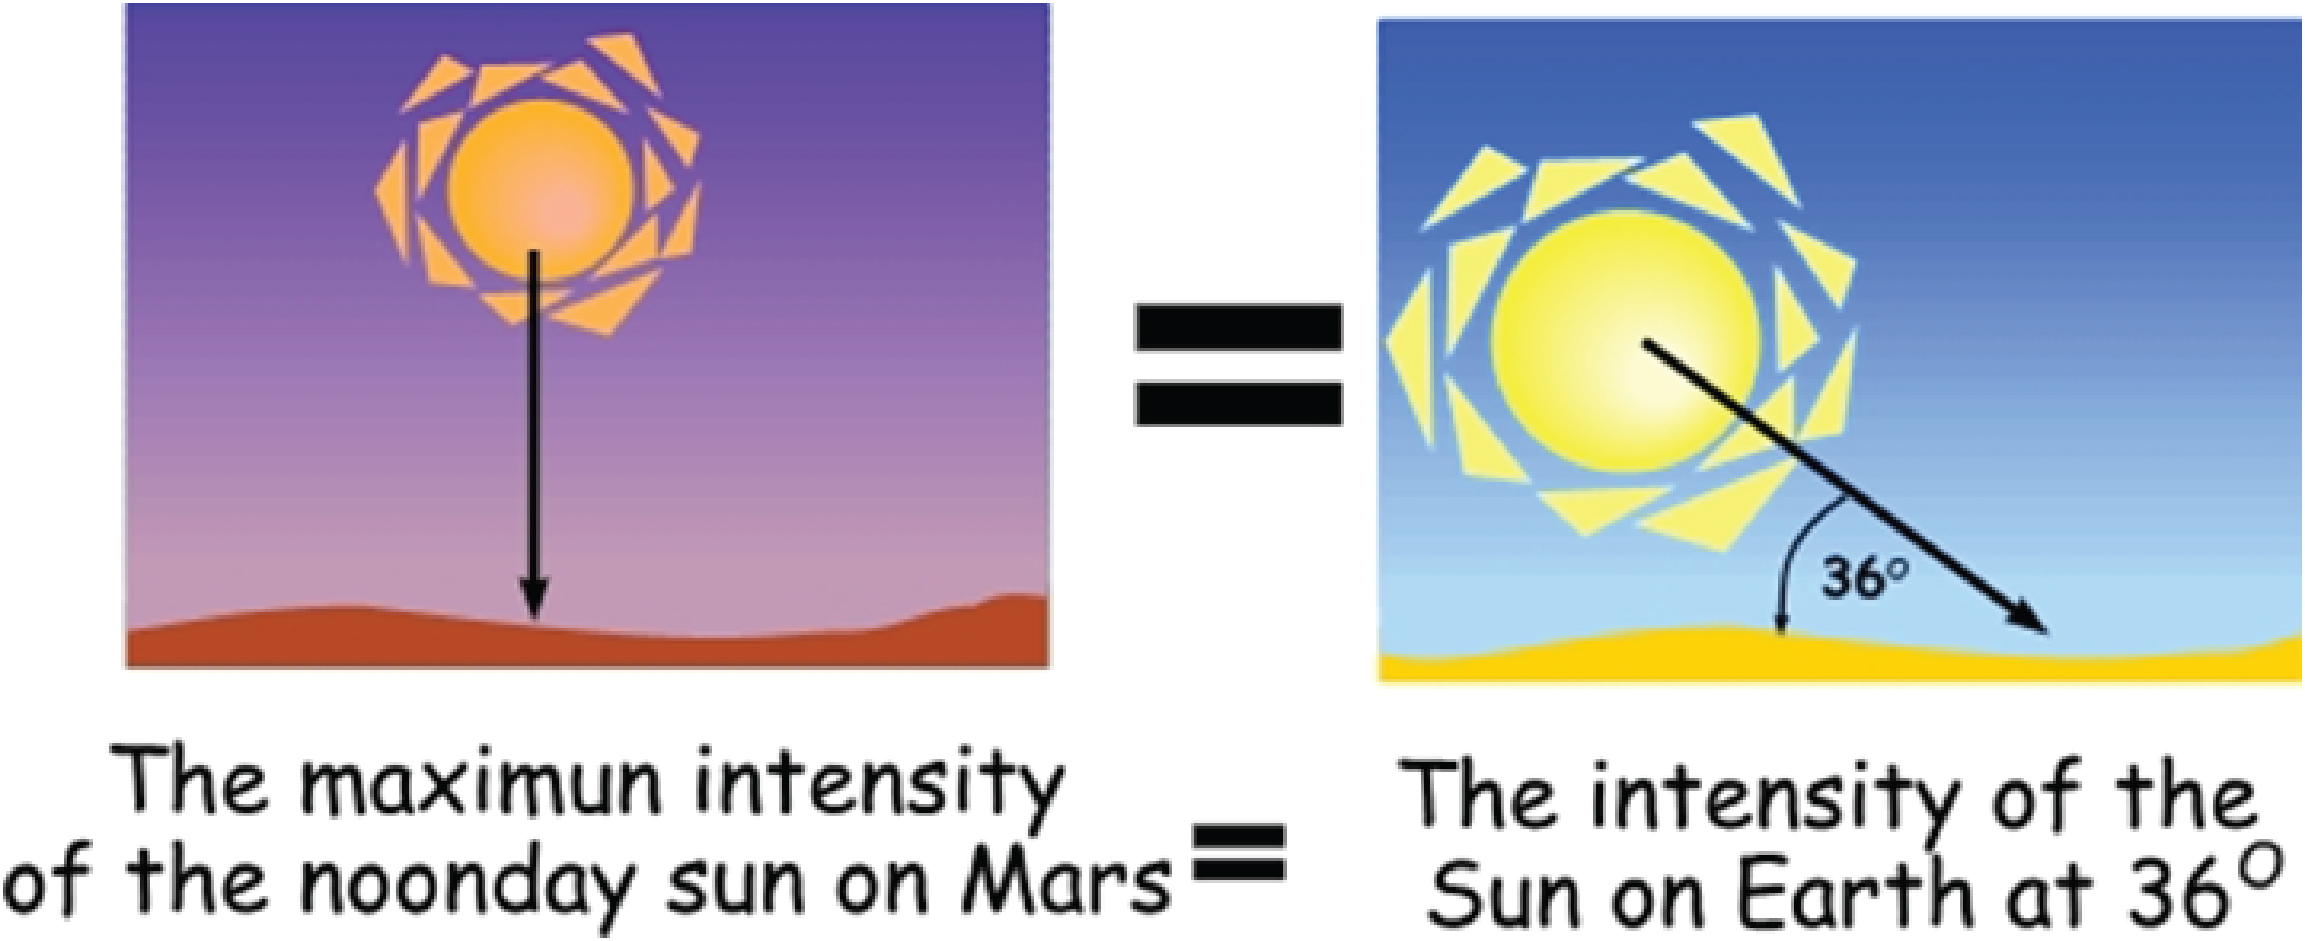 Sunlight Intensity - Mars and Earth